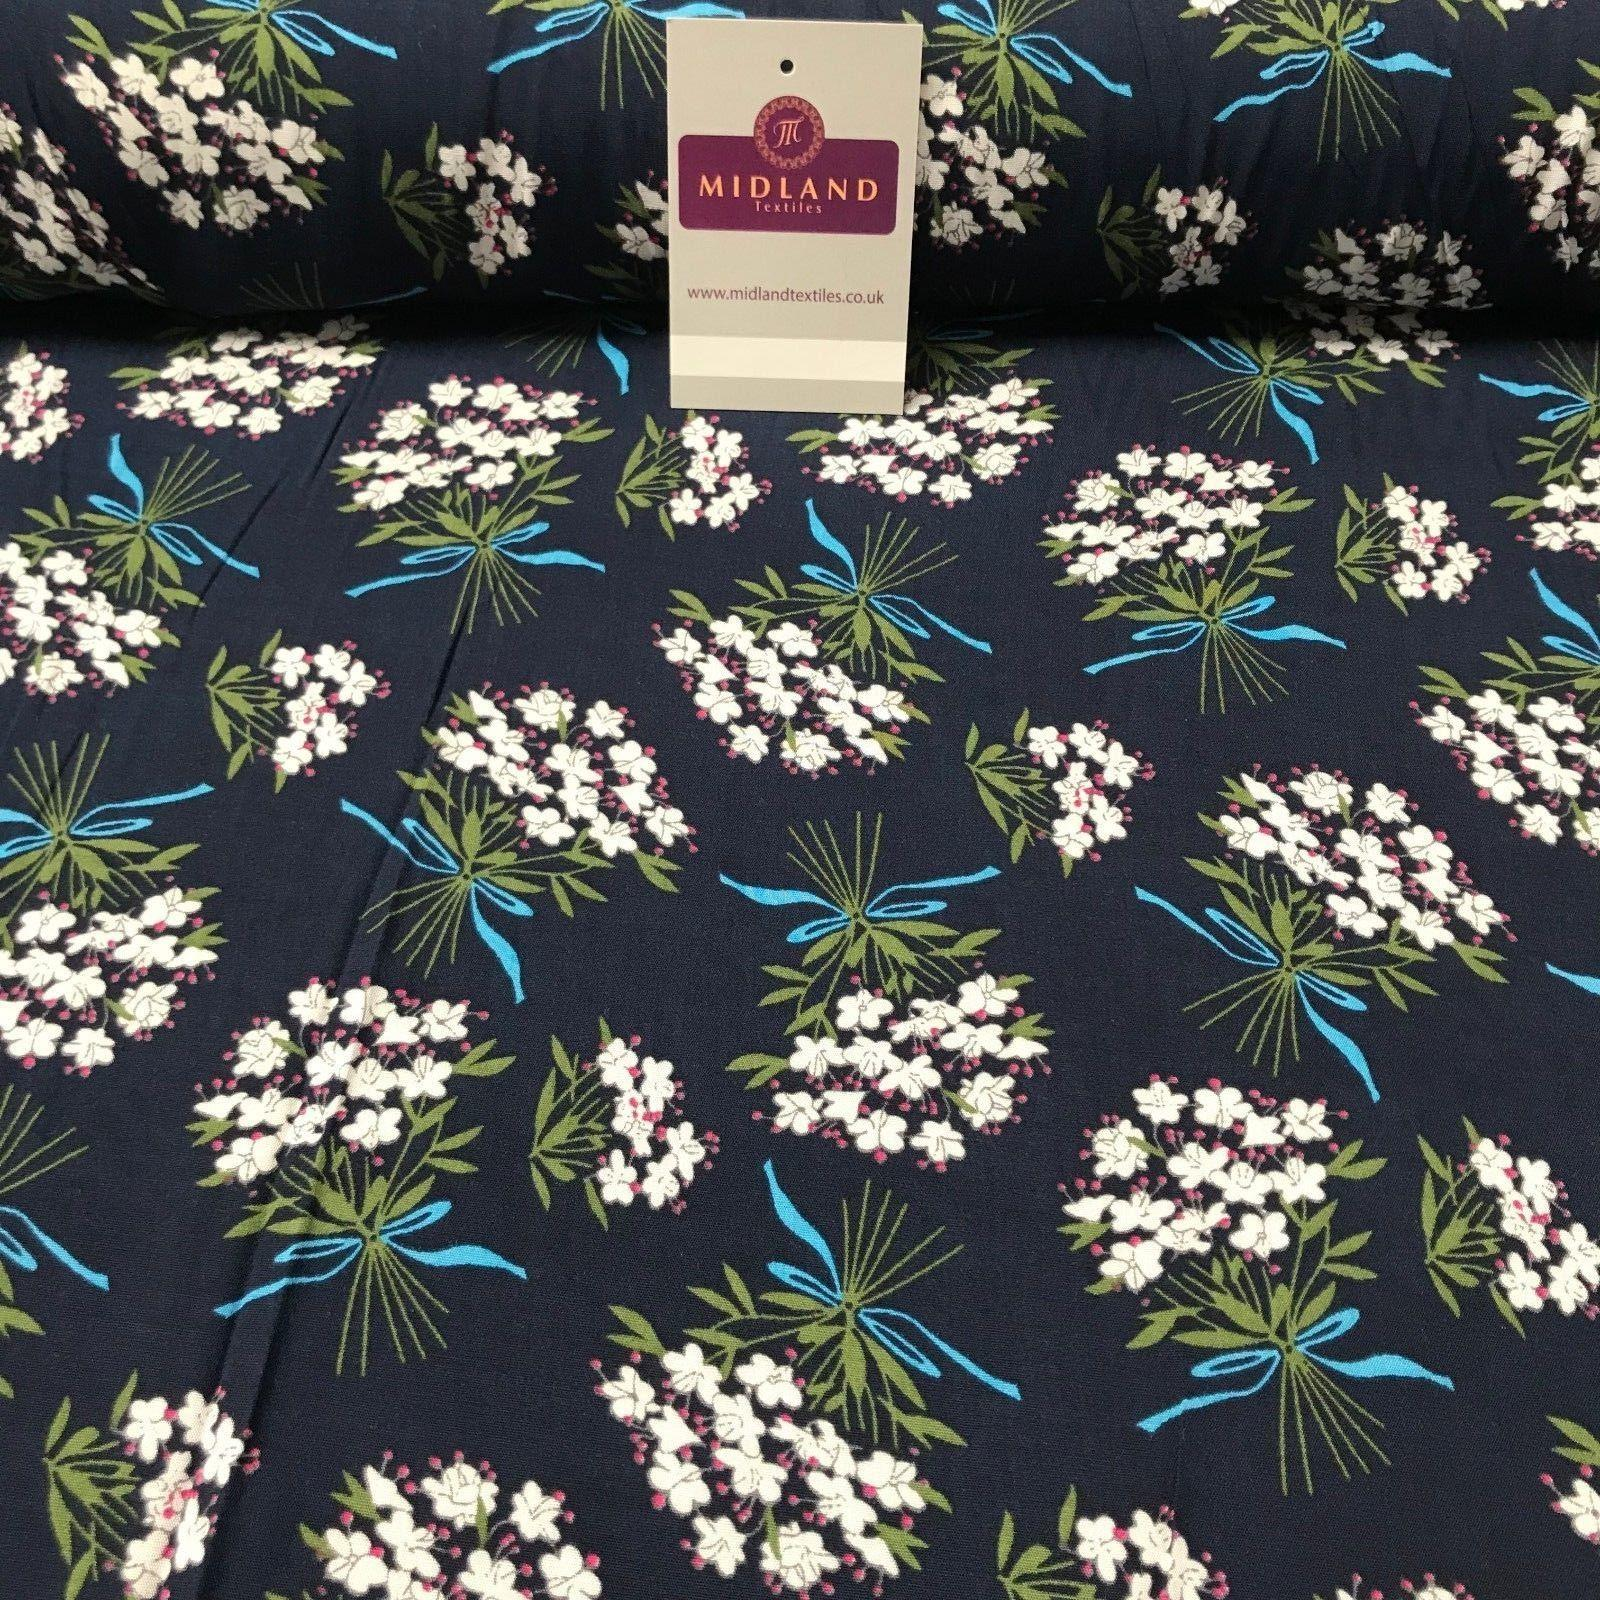 "Vintage Floral Flower Bouquet printed Viscose Dress Fabric 58"" wide MA885"